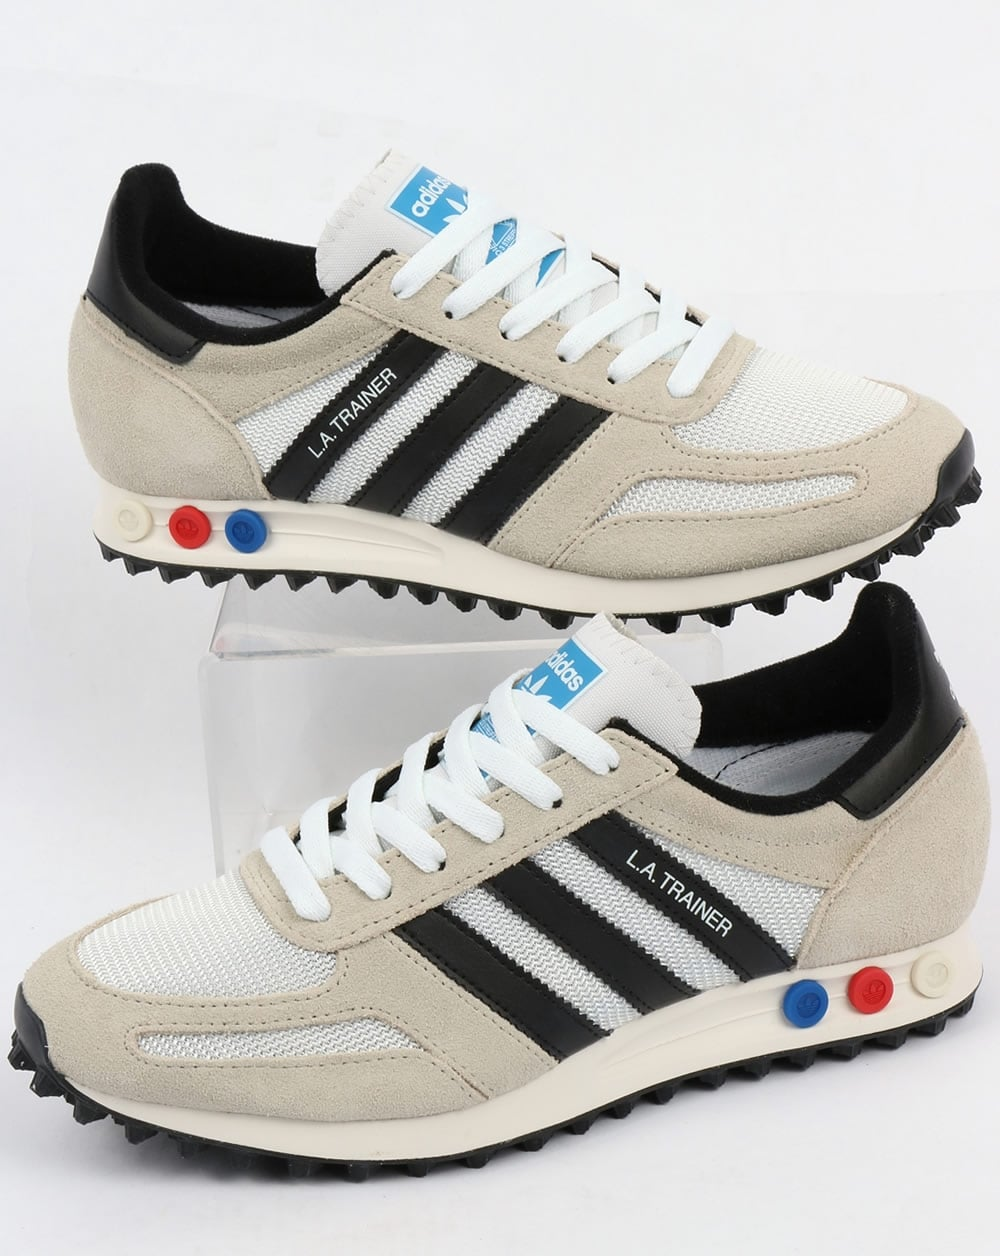 adidas vintage shoes